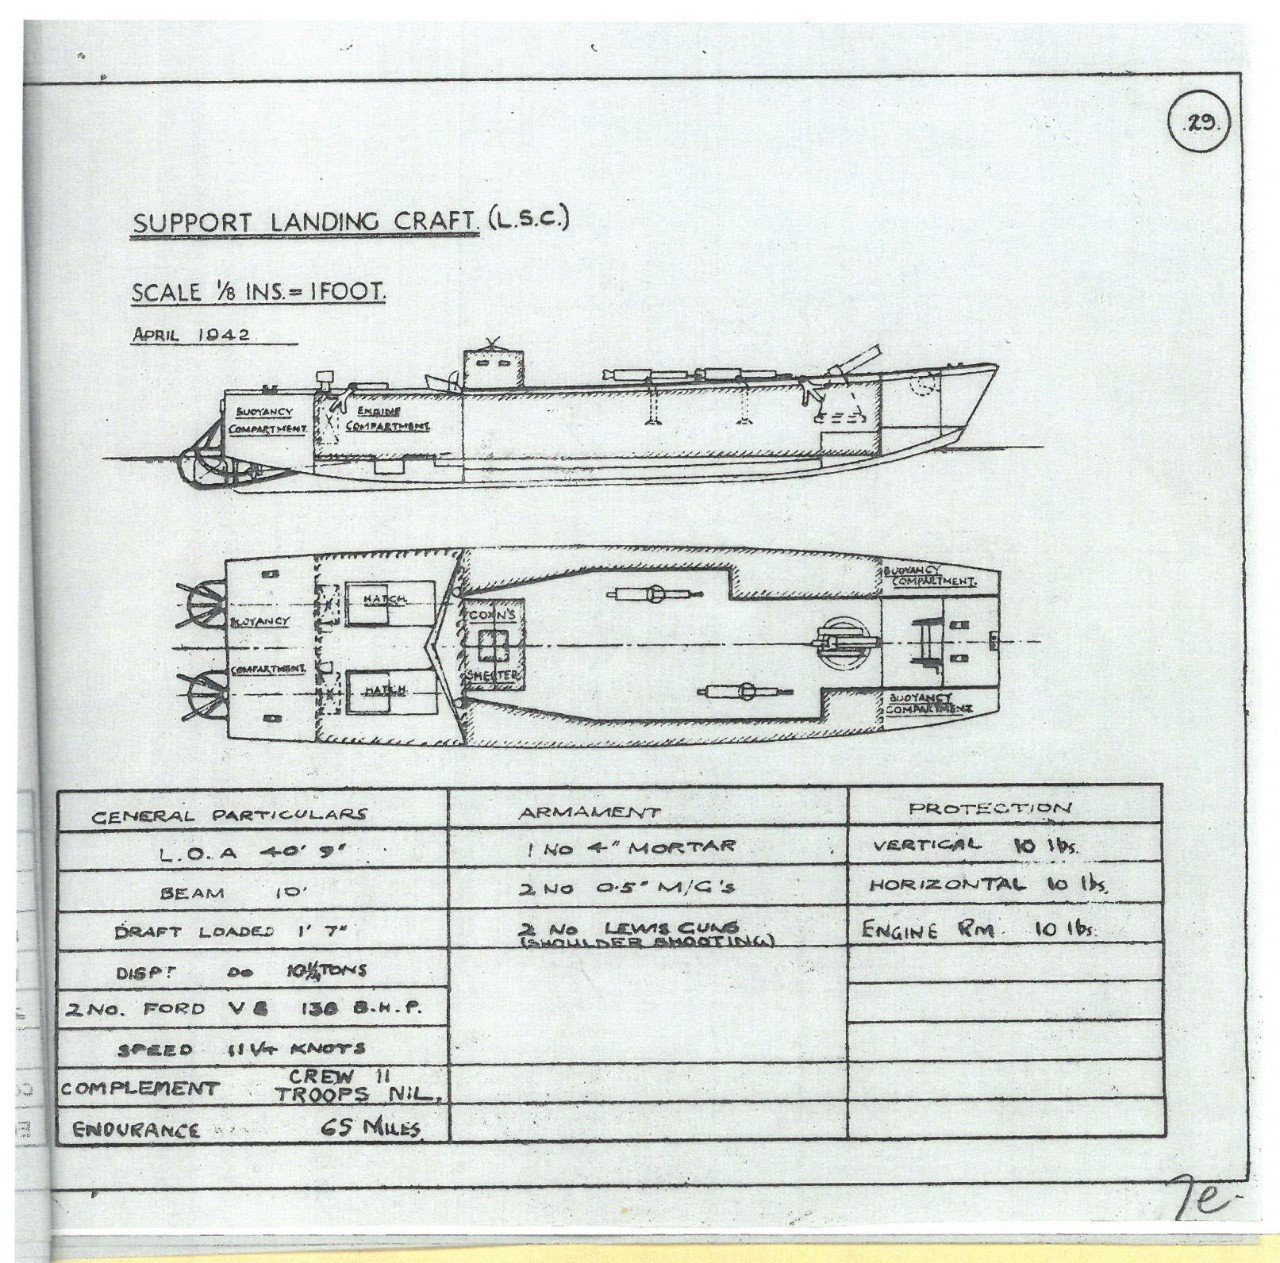 Support Landing Craft L.S.C